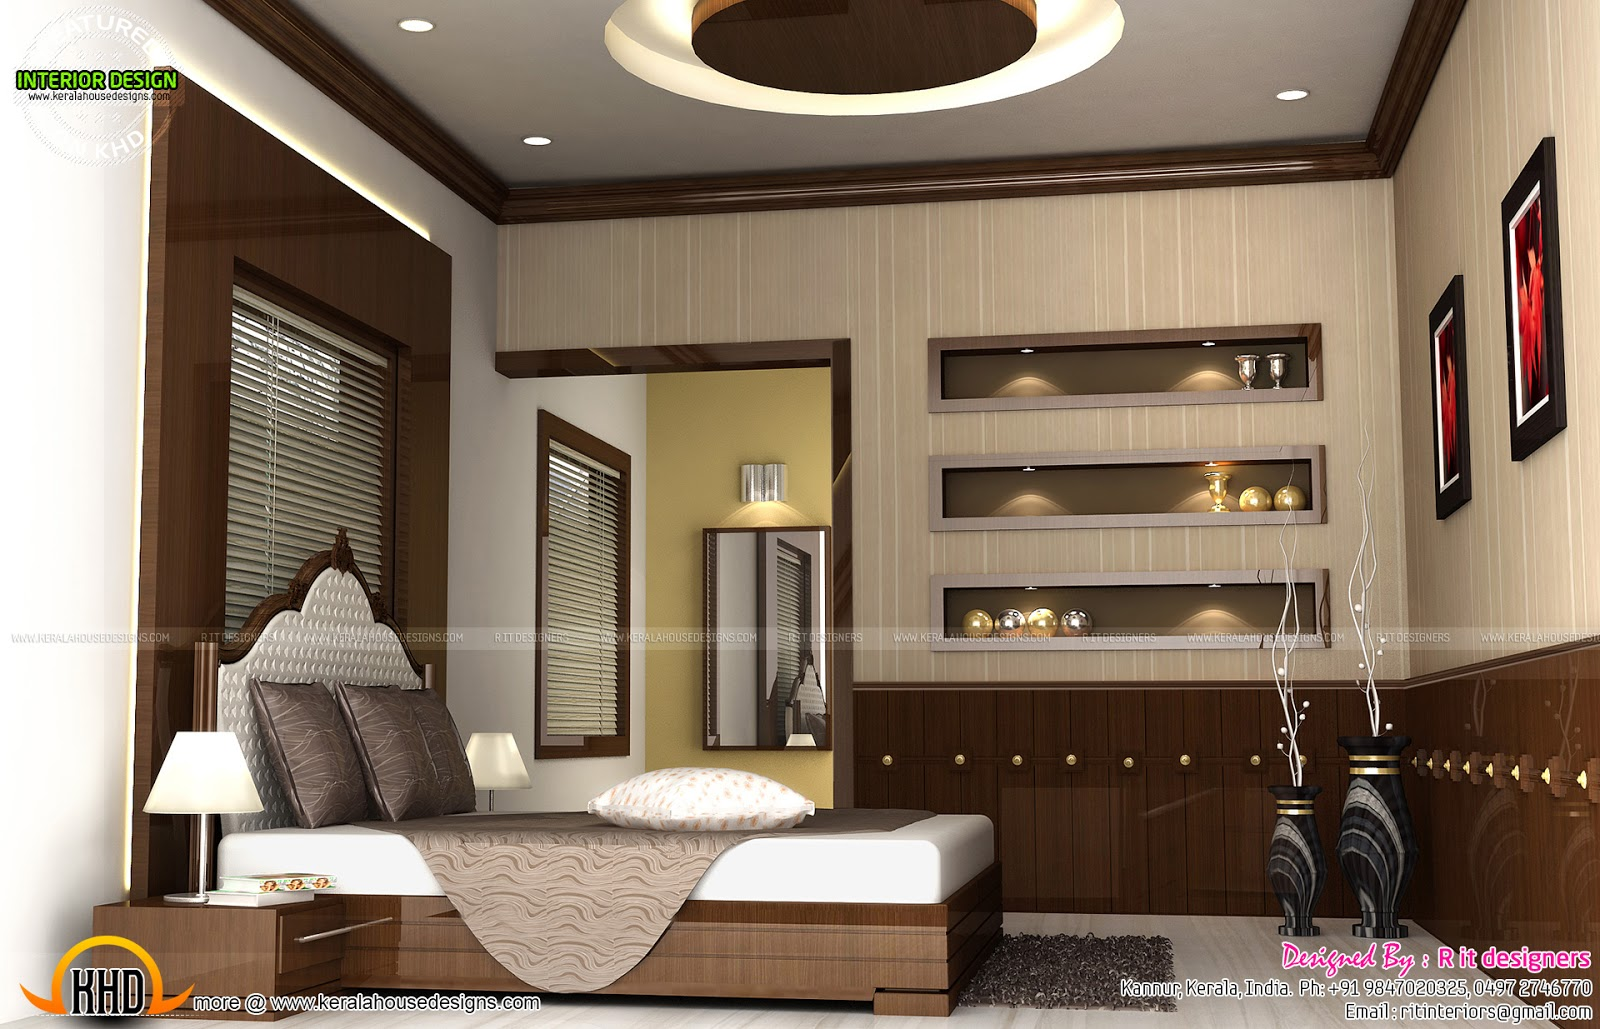 Simple & small budget living room decorating ideas | living room makeover 2020. Modular kitchen, bedroom and staircase interior - Kerala